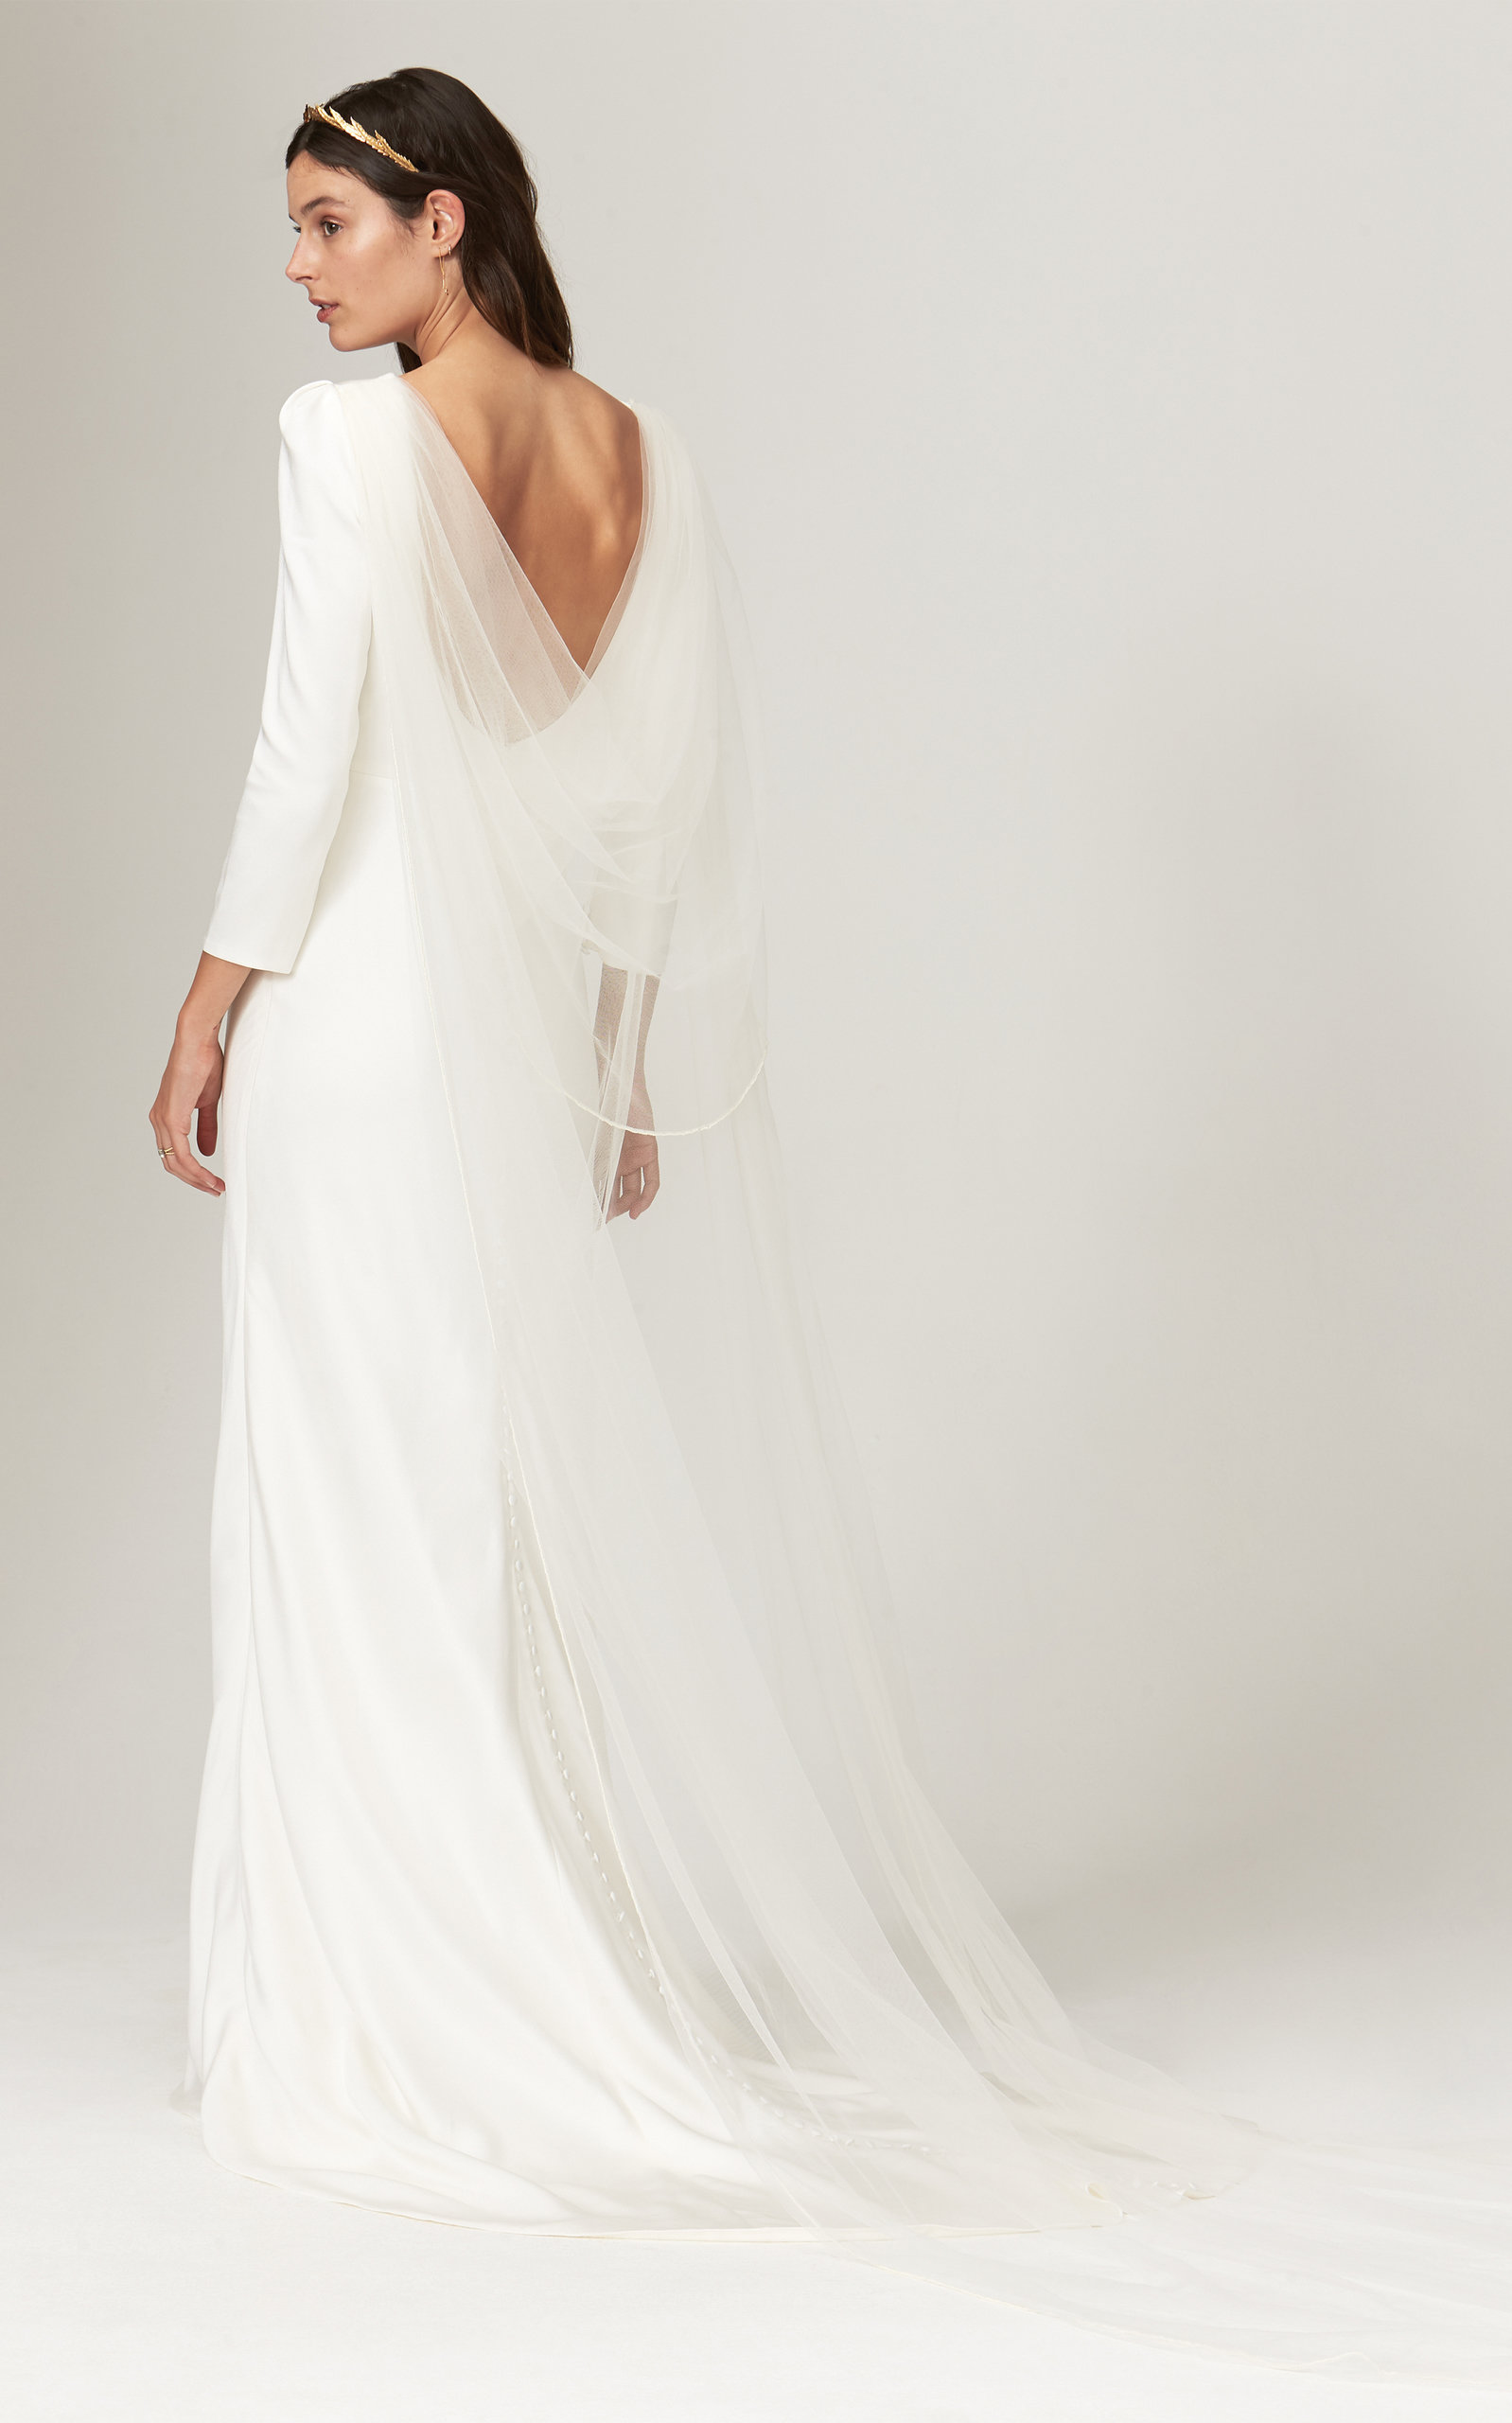 Savannah Miller - Gwendolyn Crepe Gown With Fitted Bracelet Sleeves And Open Back